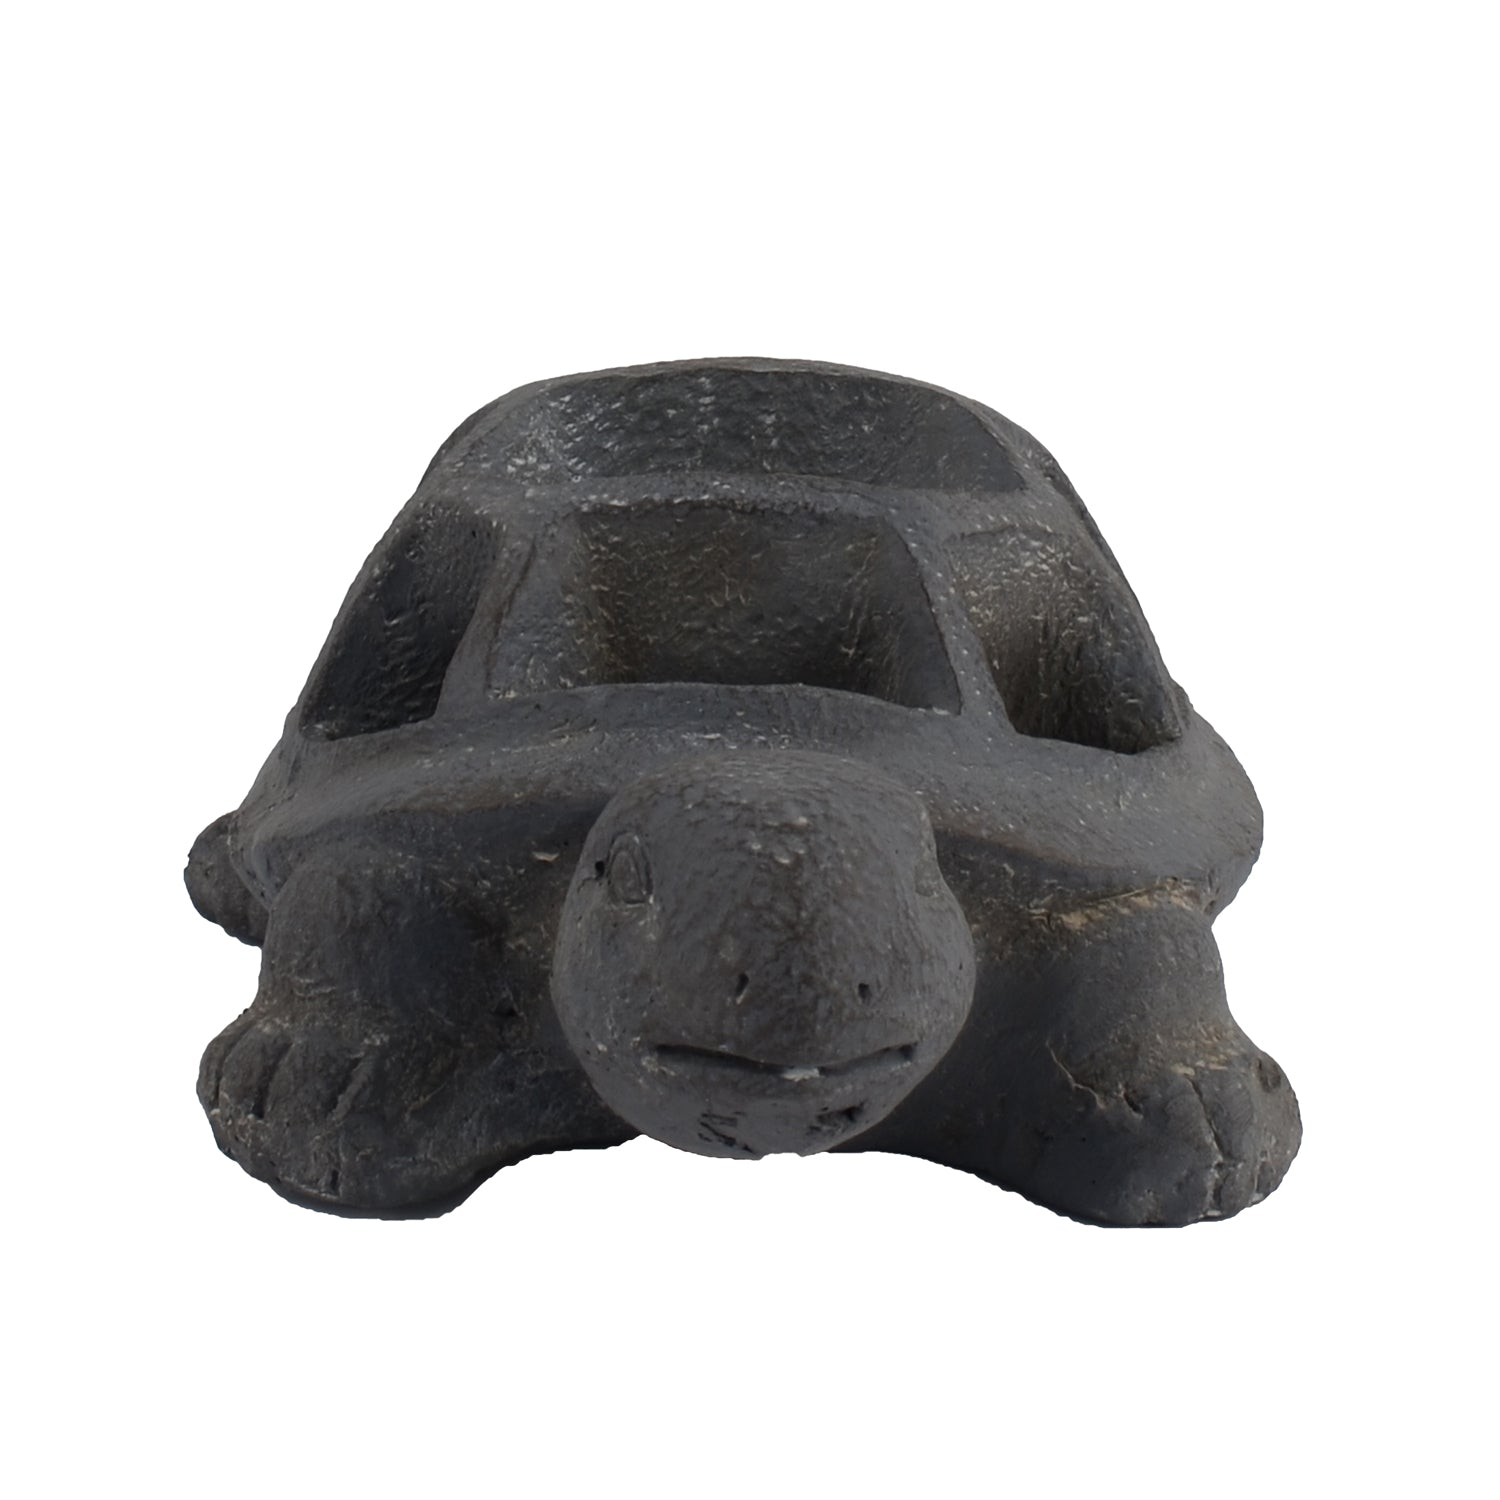 Solstice Sculptures Tortoise Planter 15cm Blue Iron Effect - Ruby's Garden Boutique